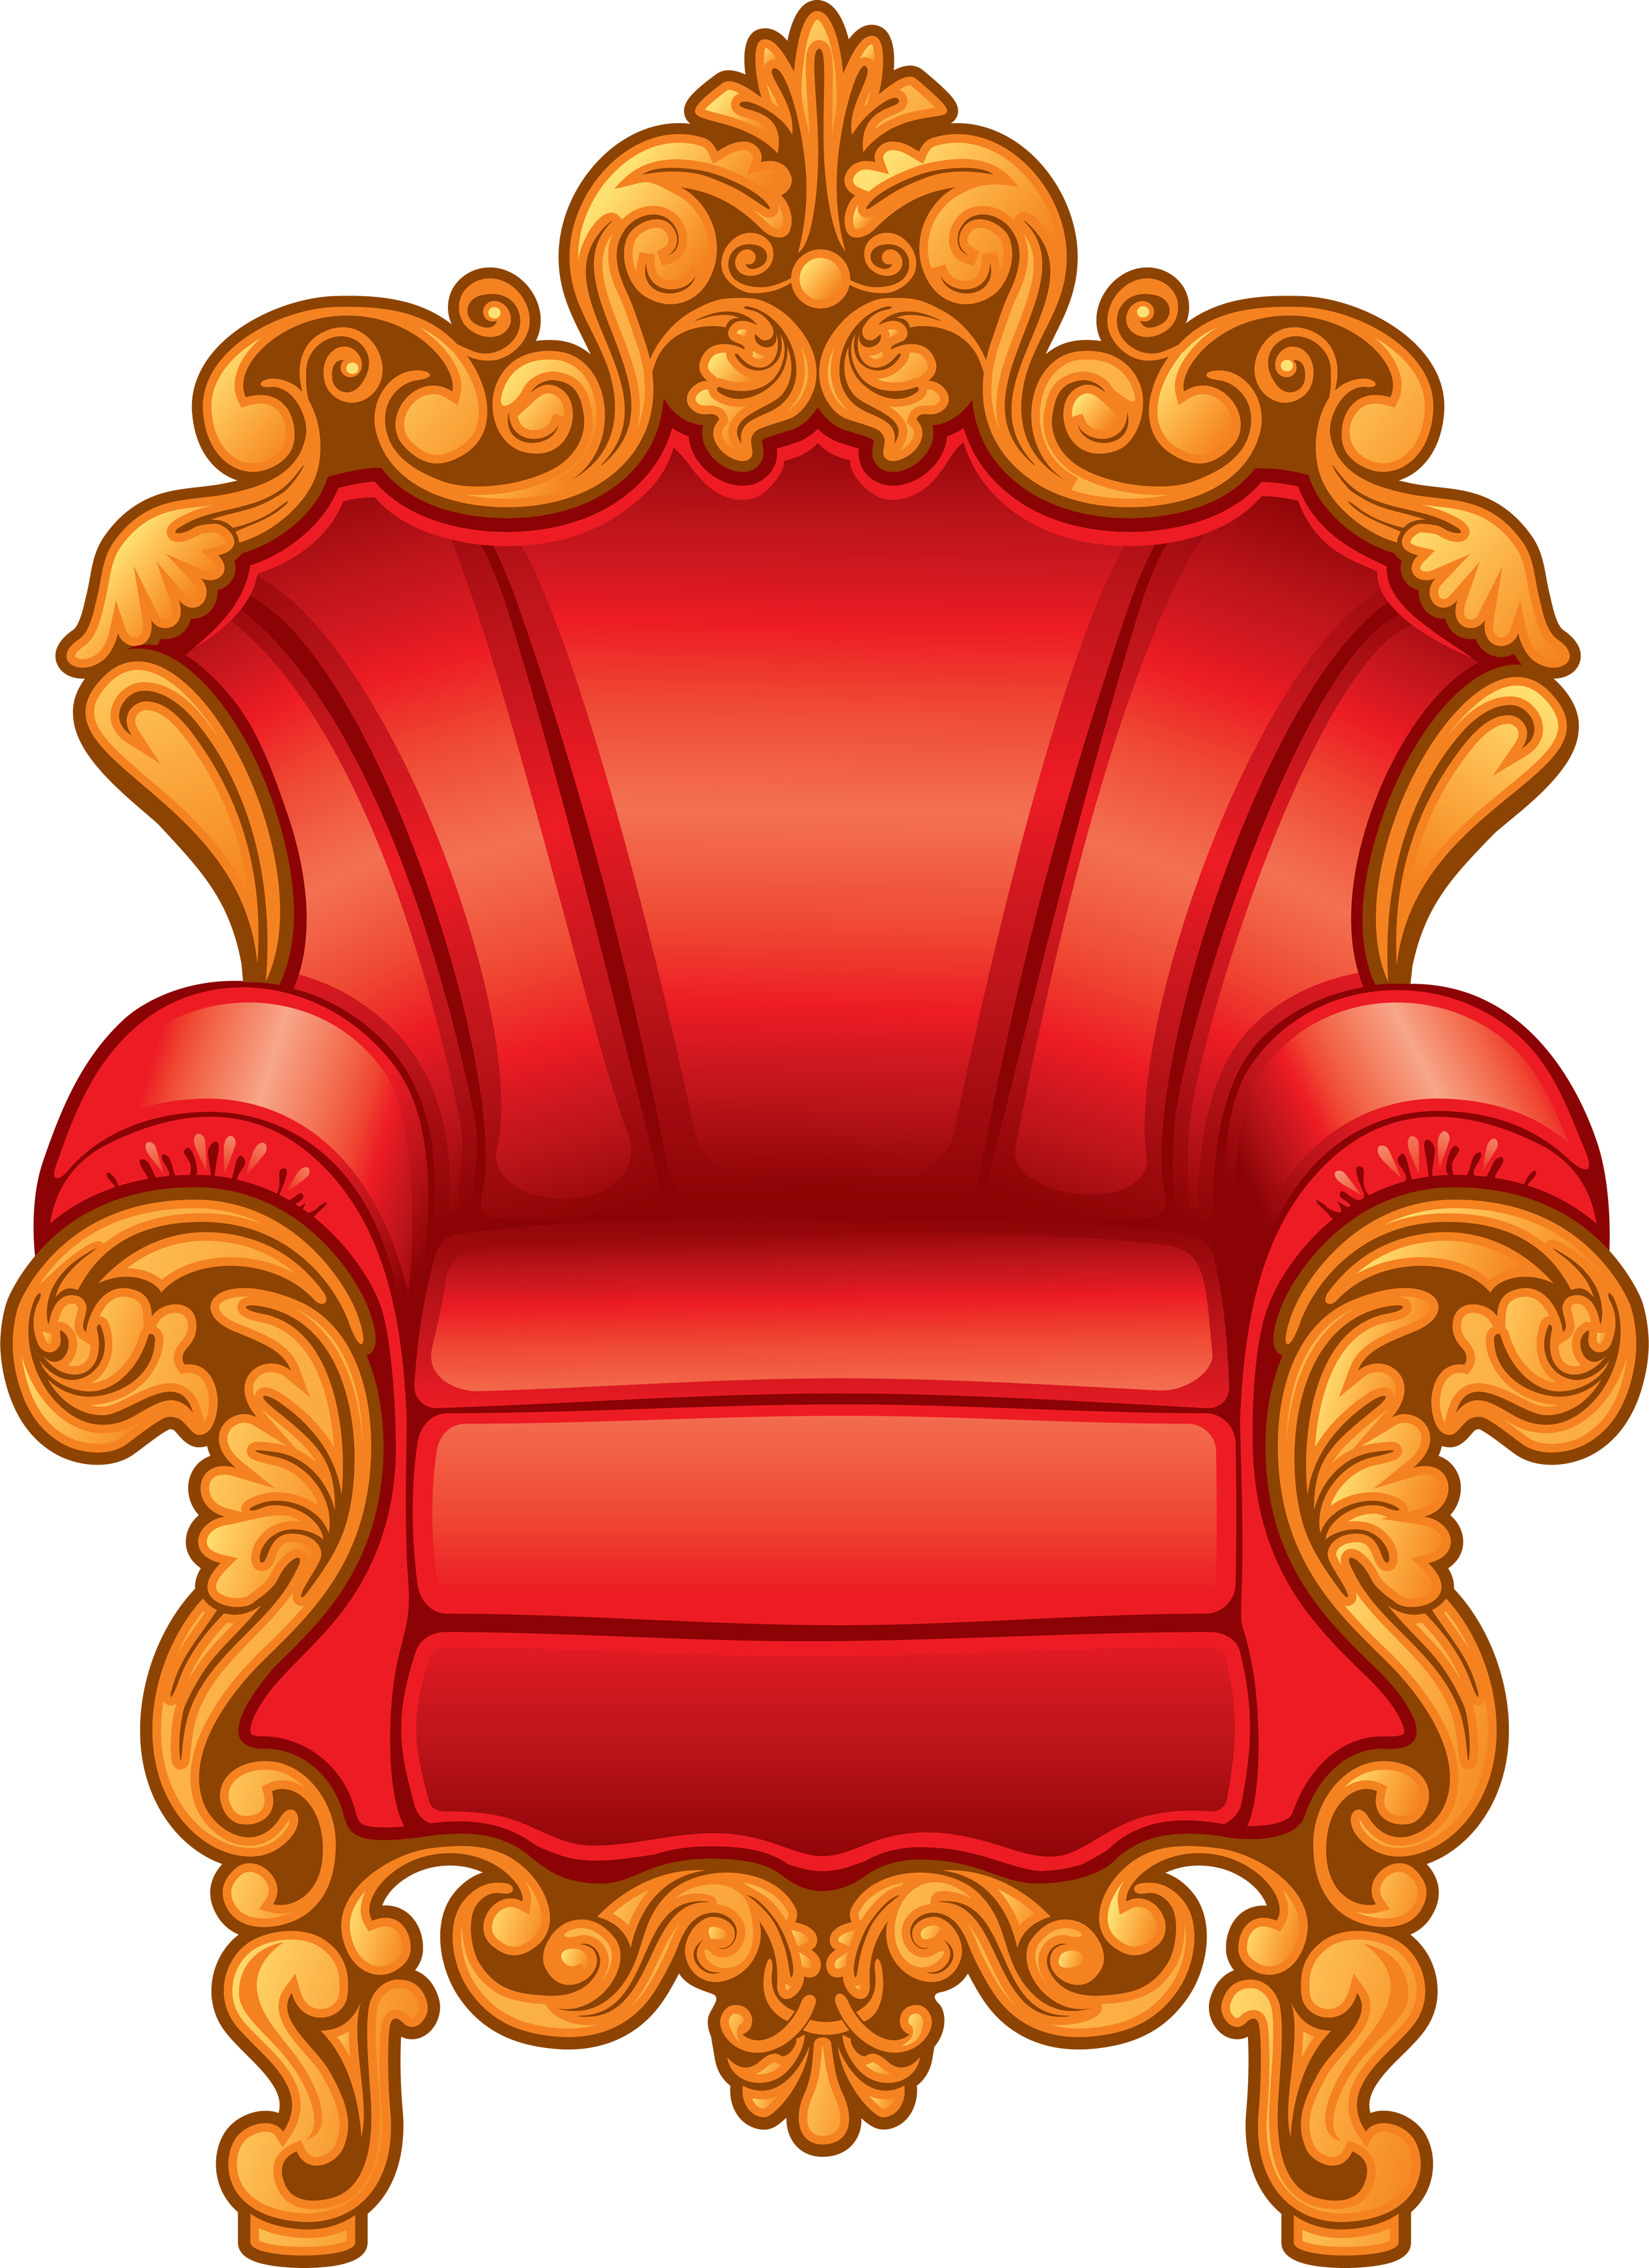 Armchair Png Image Armchair Photography Studio Background Surreal Photo Manipulation